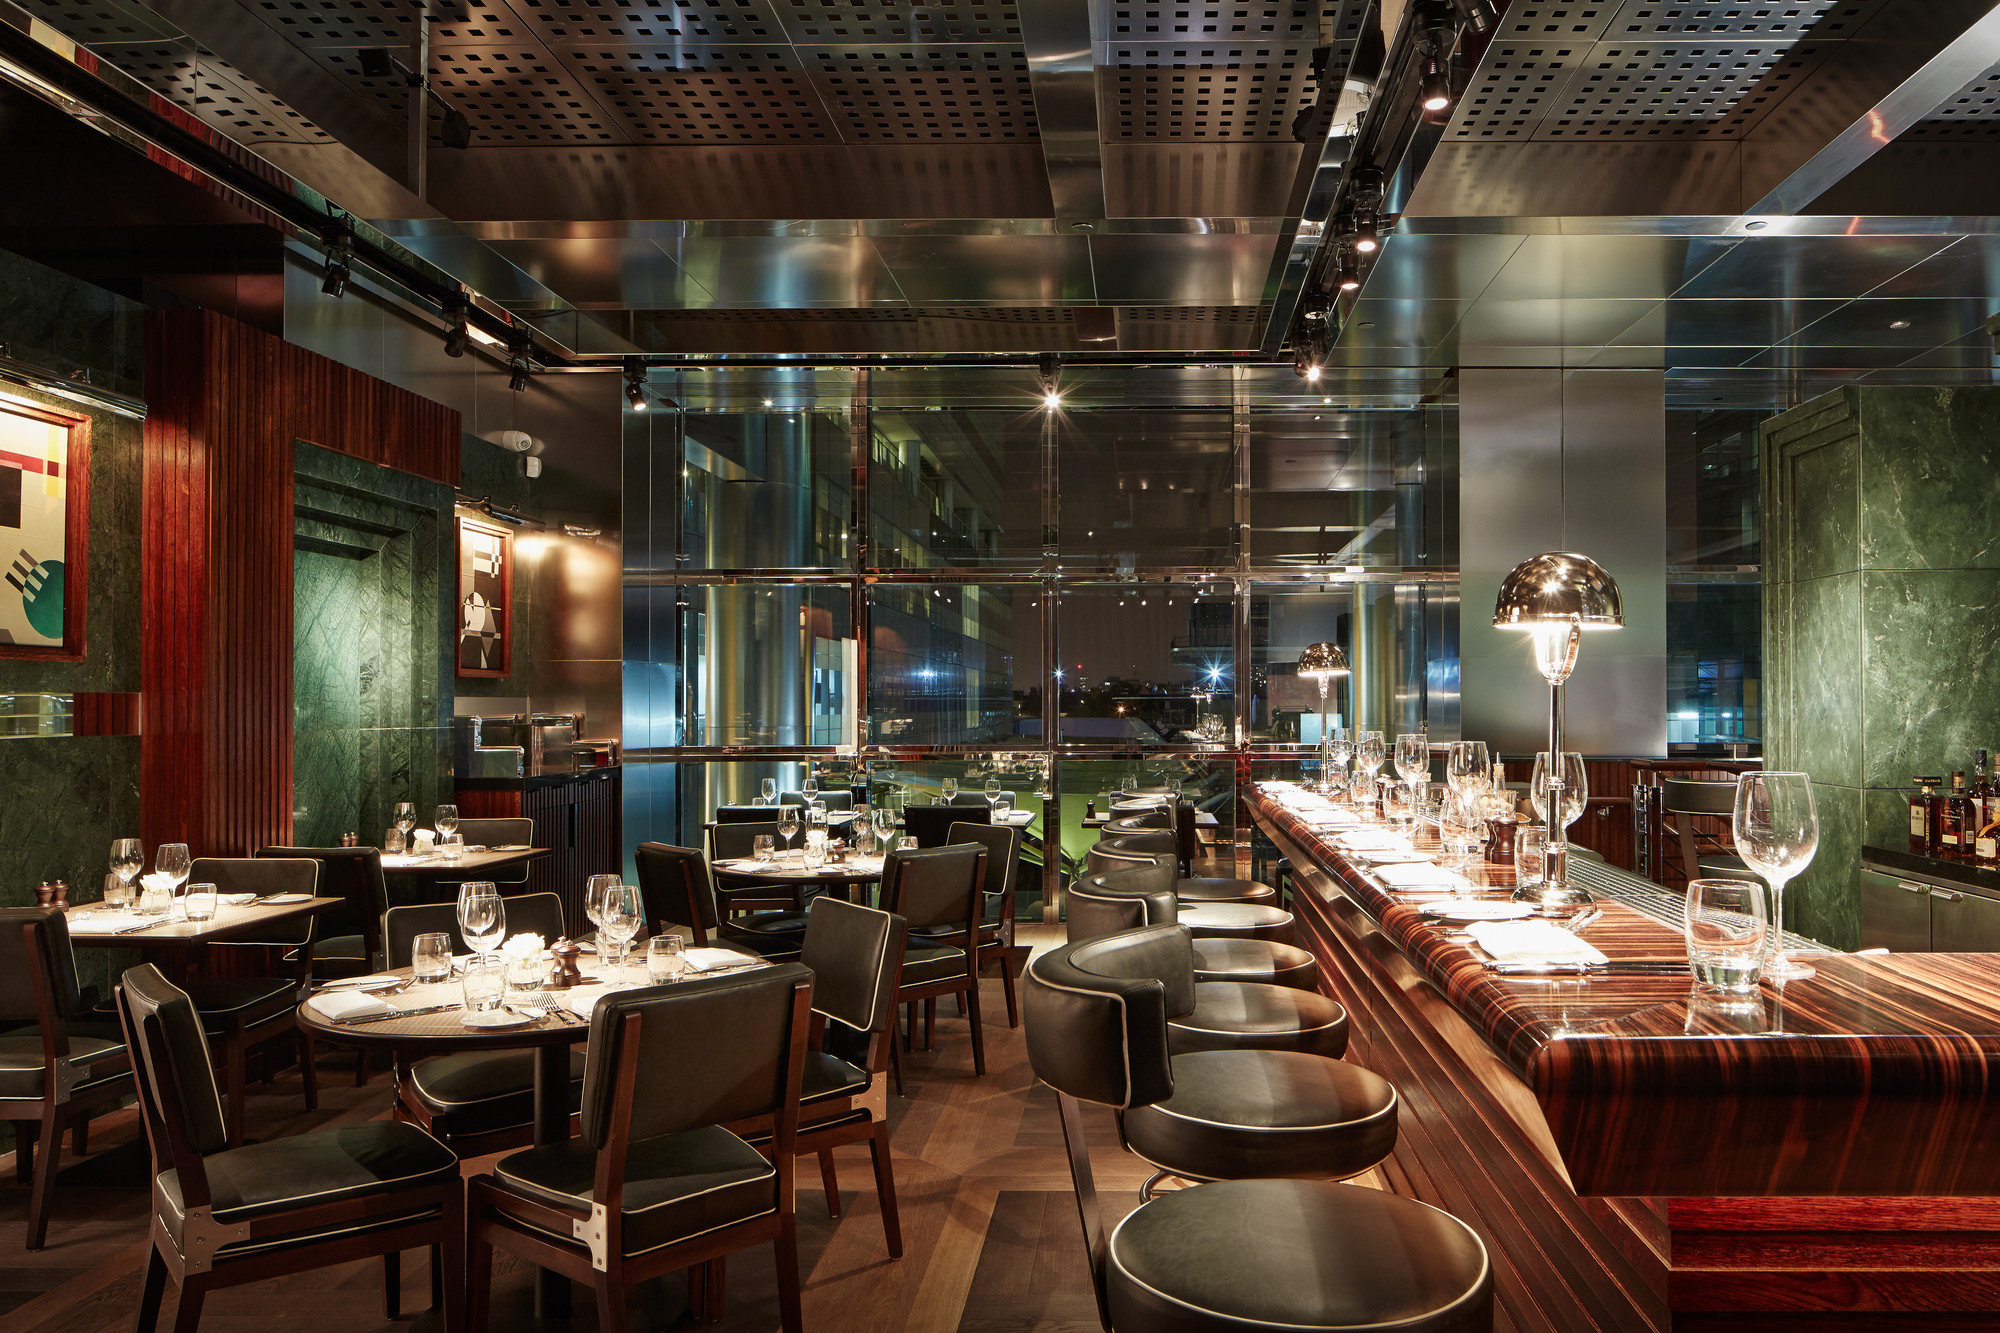 Beau Restaurant/Bar In A Retail Space: One Canada Square (London) / David